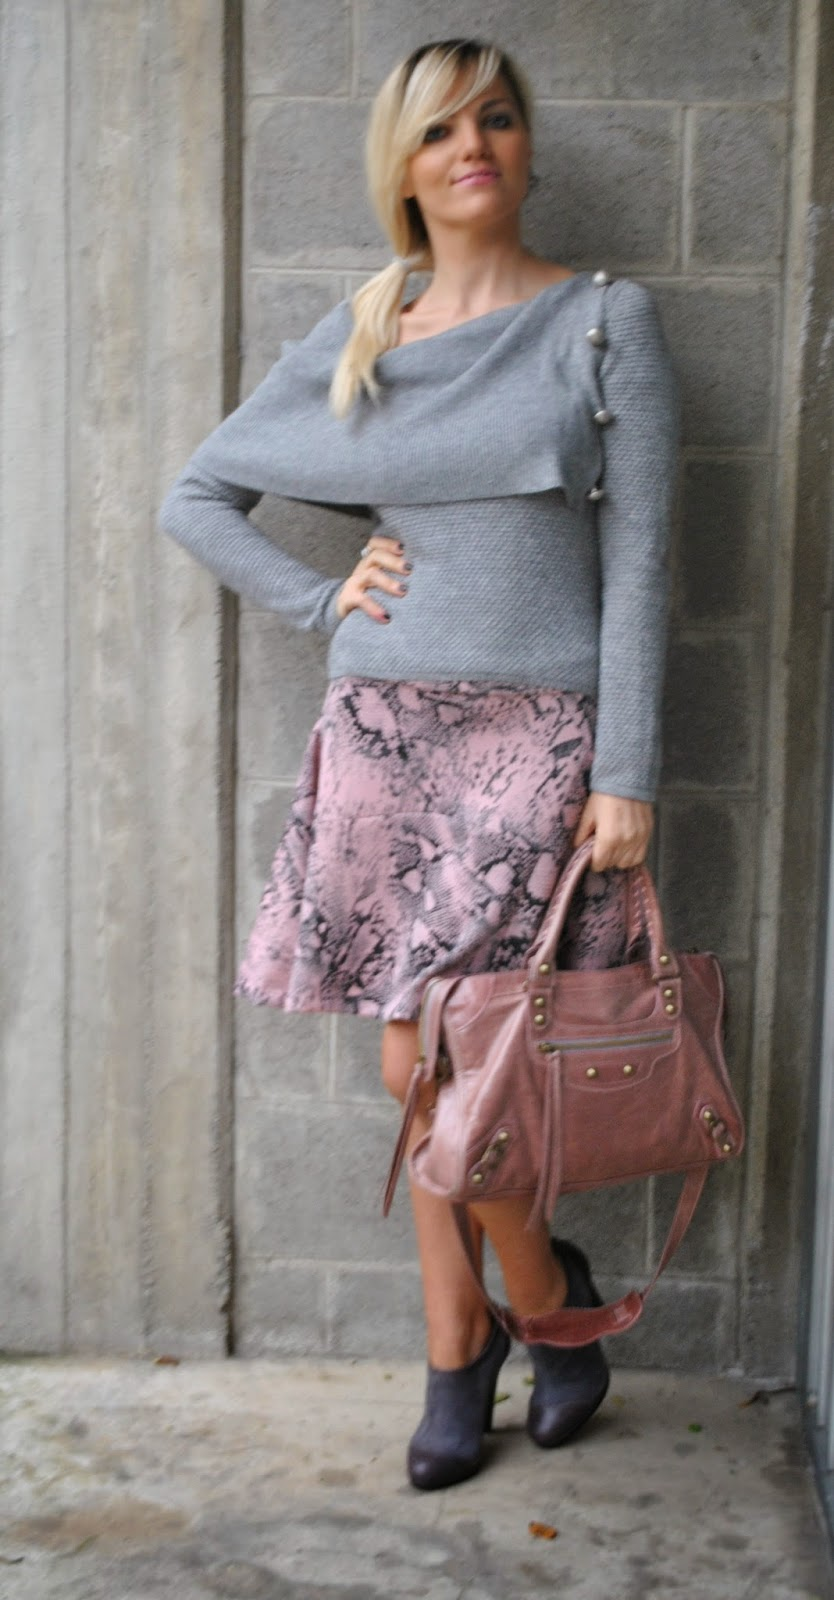 outfit gonna rosa in neoprene con stampa pitone neoprene pink skirt grey sweater autumnal outfit how to wear pink how to wear grey pink balenciaga bag pyton print fashion bloggers italy    maglione grigio marella orecchini breil anello breil scarpe grigiie in camoscio e pelle danilo di lea borsa rosa antico balenciaga how to wear pink skirt abbinamenti gonna rosa abbinamenti maglione grigio how to wear gray abbinamenti rosa e grigio come abbinare rosa e grigio how to wear gray and pink how to combine gray and pink gonna rosa stampa pitone stampa pitone outfit novembre 2014 outfit autunnali mariafelicia magno mariafelicia magno fashion blogger colorblock by felym outfit mariafelicia magno fashion blogger italiane fashion blogger bionde ragazze bionde coda laterale acconciatura coda laterale scarpe francesine outfit scarpe francesine come abbinare le francesine